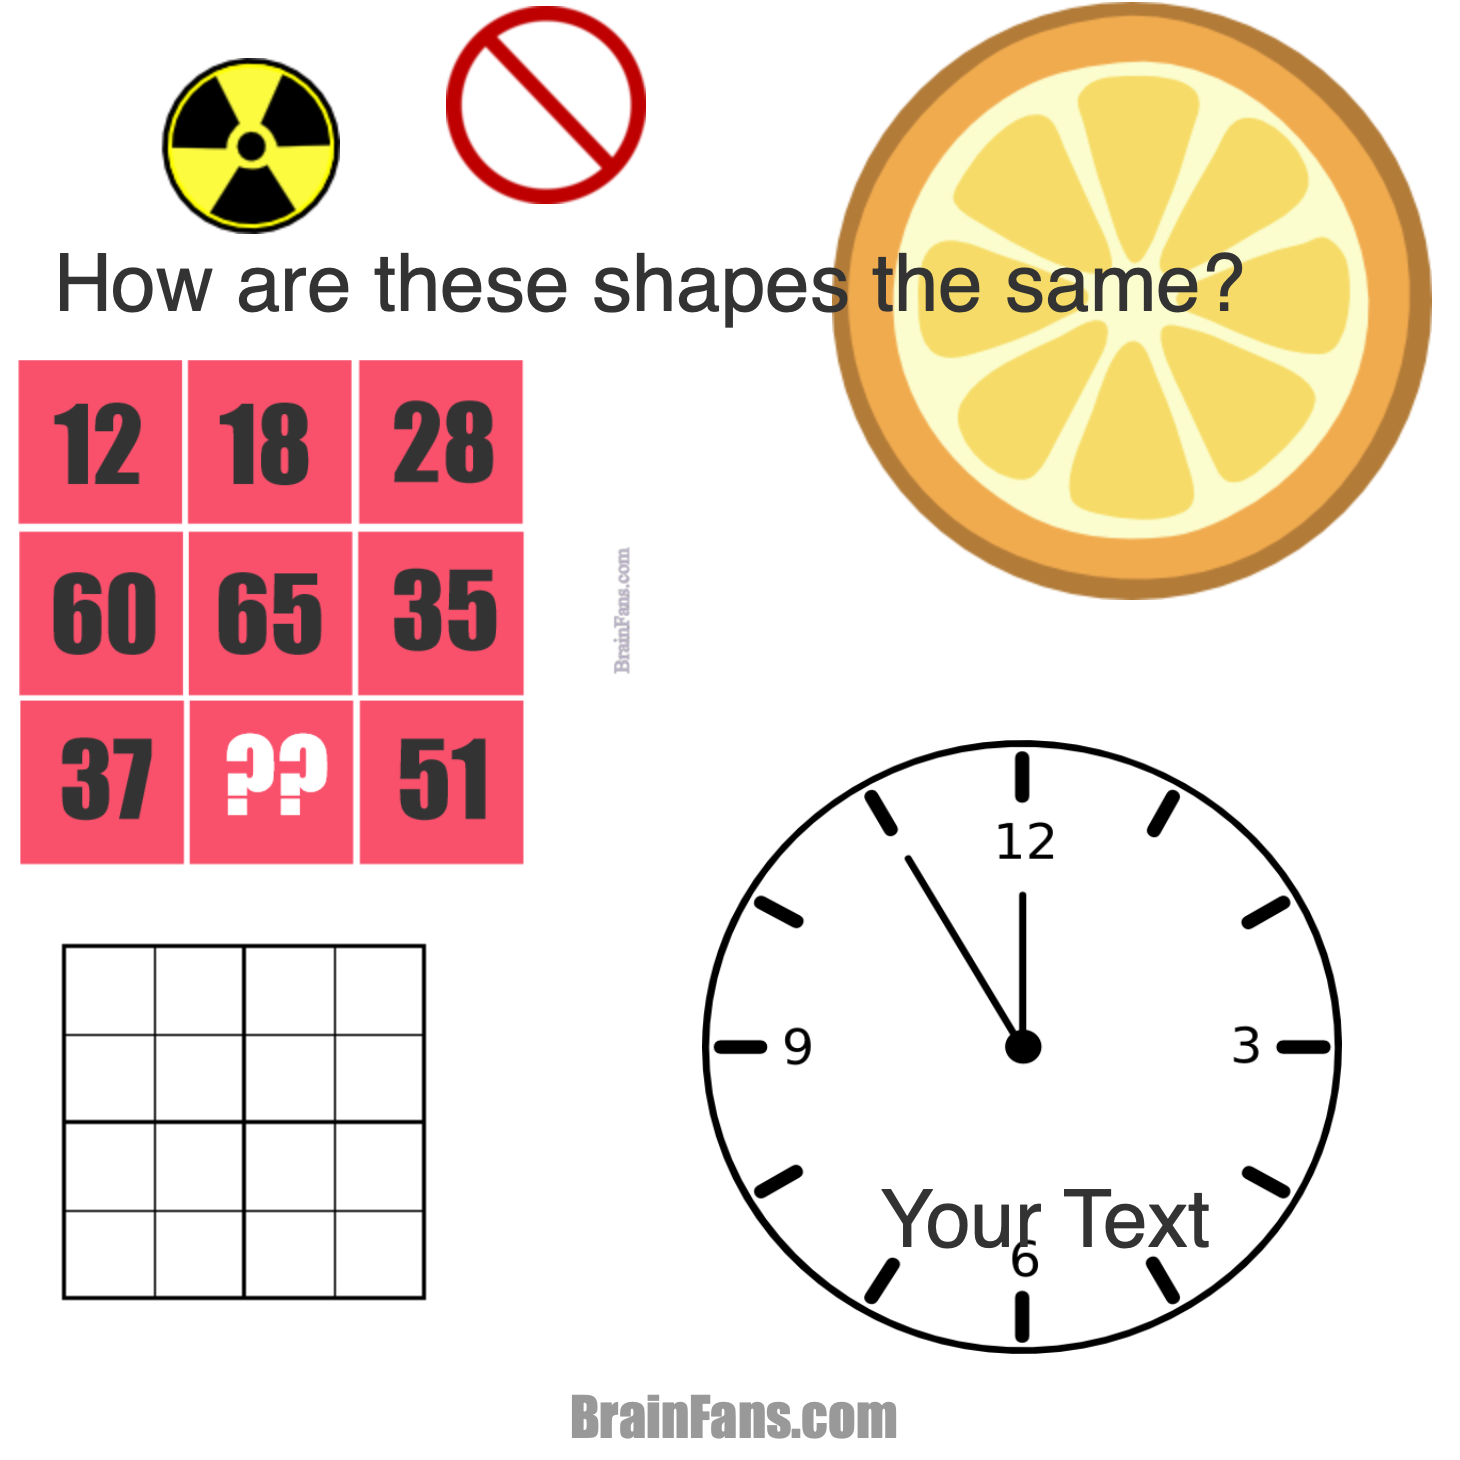 Puzzle With Animals For Genius Number And Math Puzzle Brainfans Maths Puzzles Brain Teasers Logic Puzzles